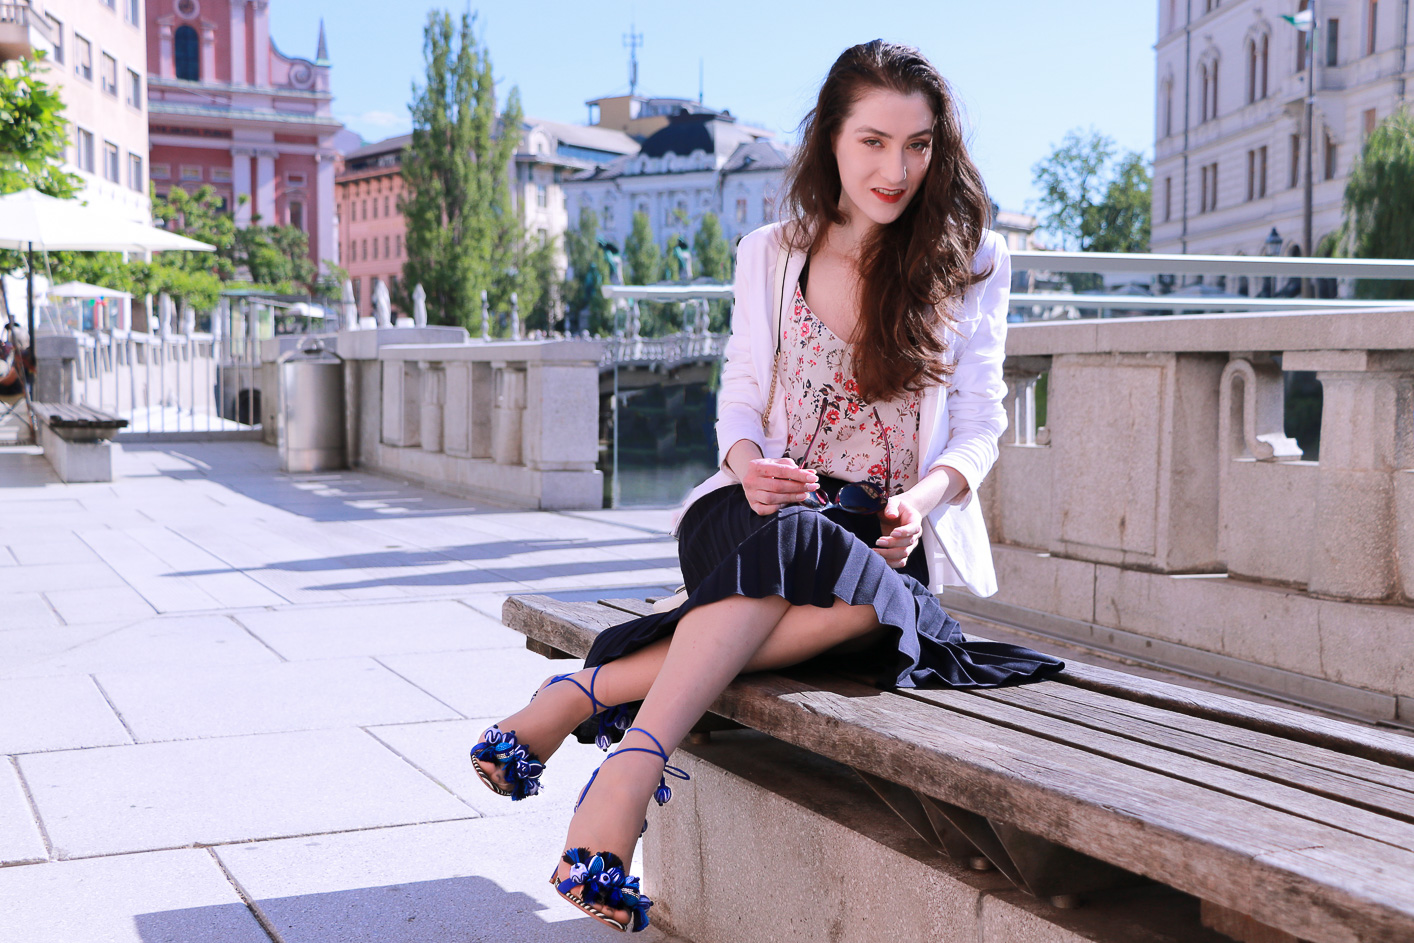 Fashion blogger Veronika Lipar of Brunette From Wall Street sharing how to style black vintage midi plissé skirt, blue Tropicana tasseled beaded sandals from Aquazzura, floral top, and white blazer for a chic summer look